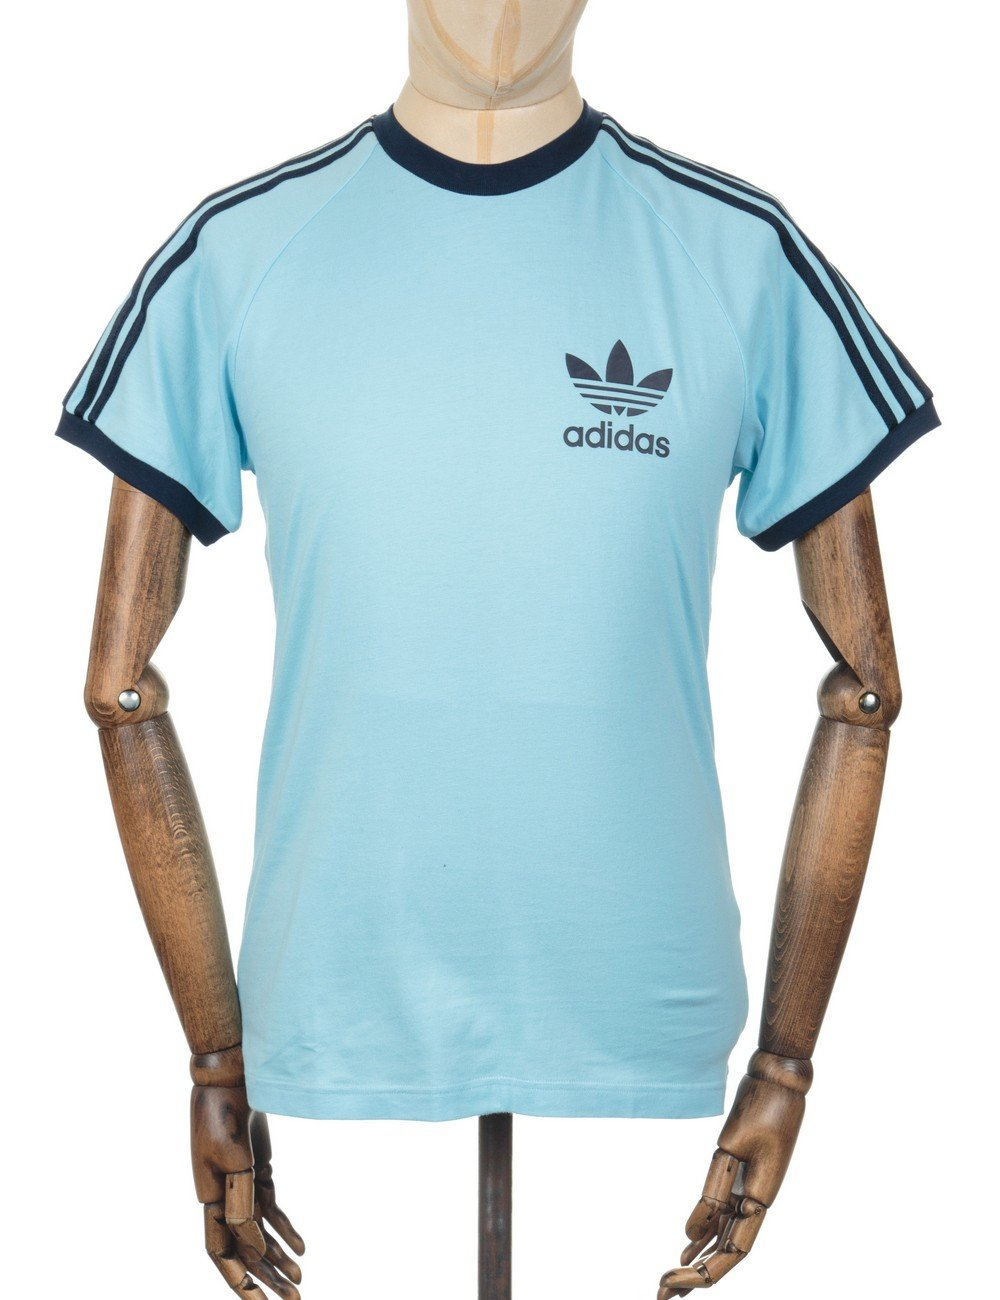 adidas originals t shirt retro